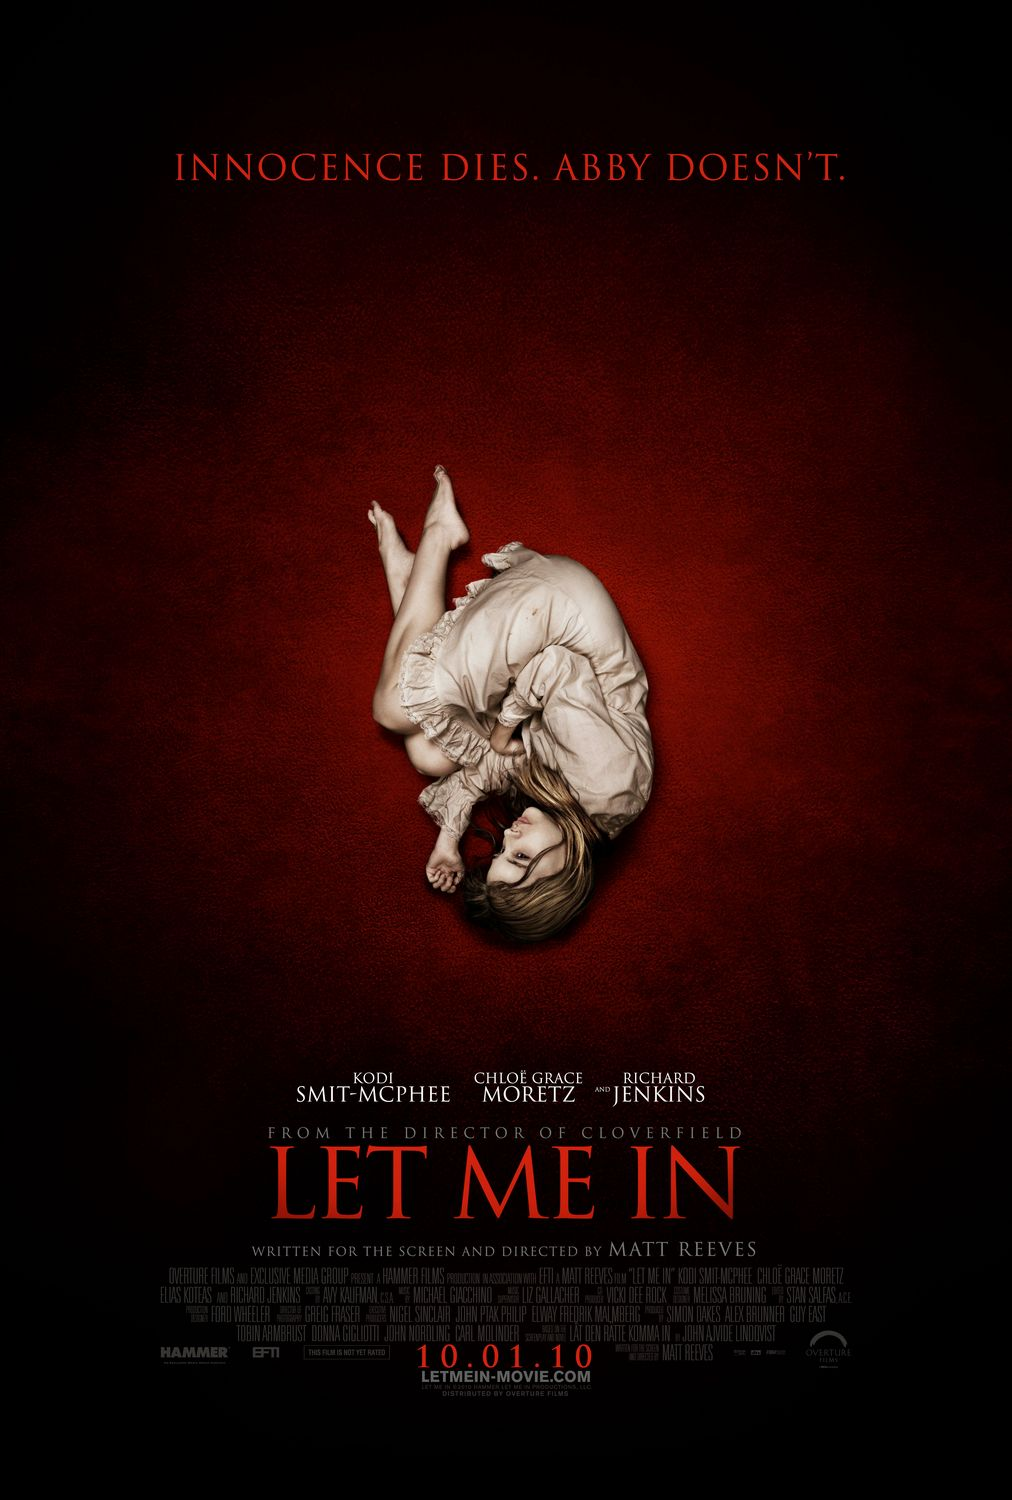 let_me_in_movie_poster_chloe_moretz_02.jpg